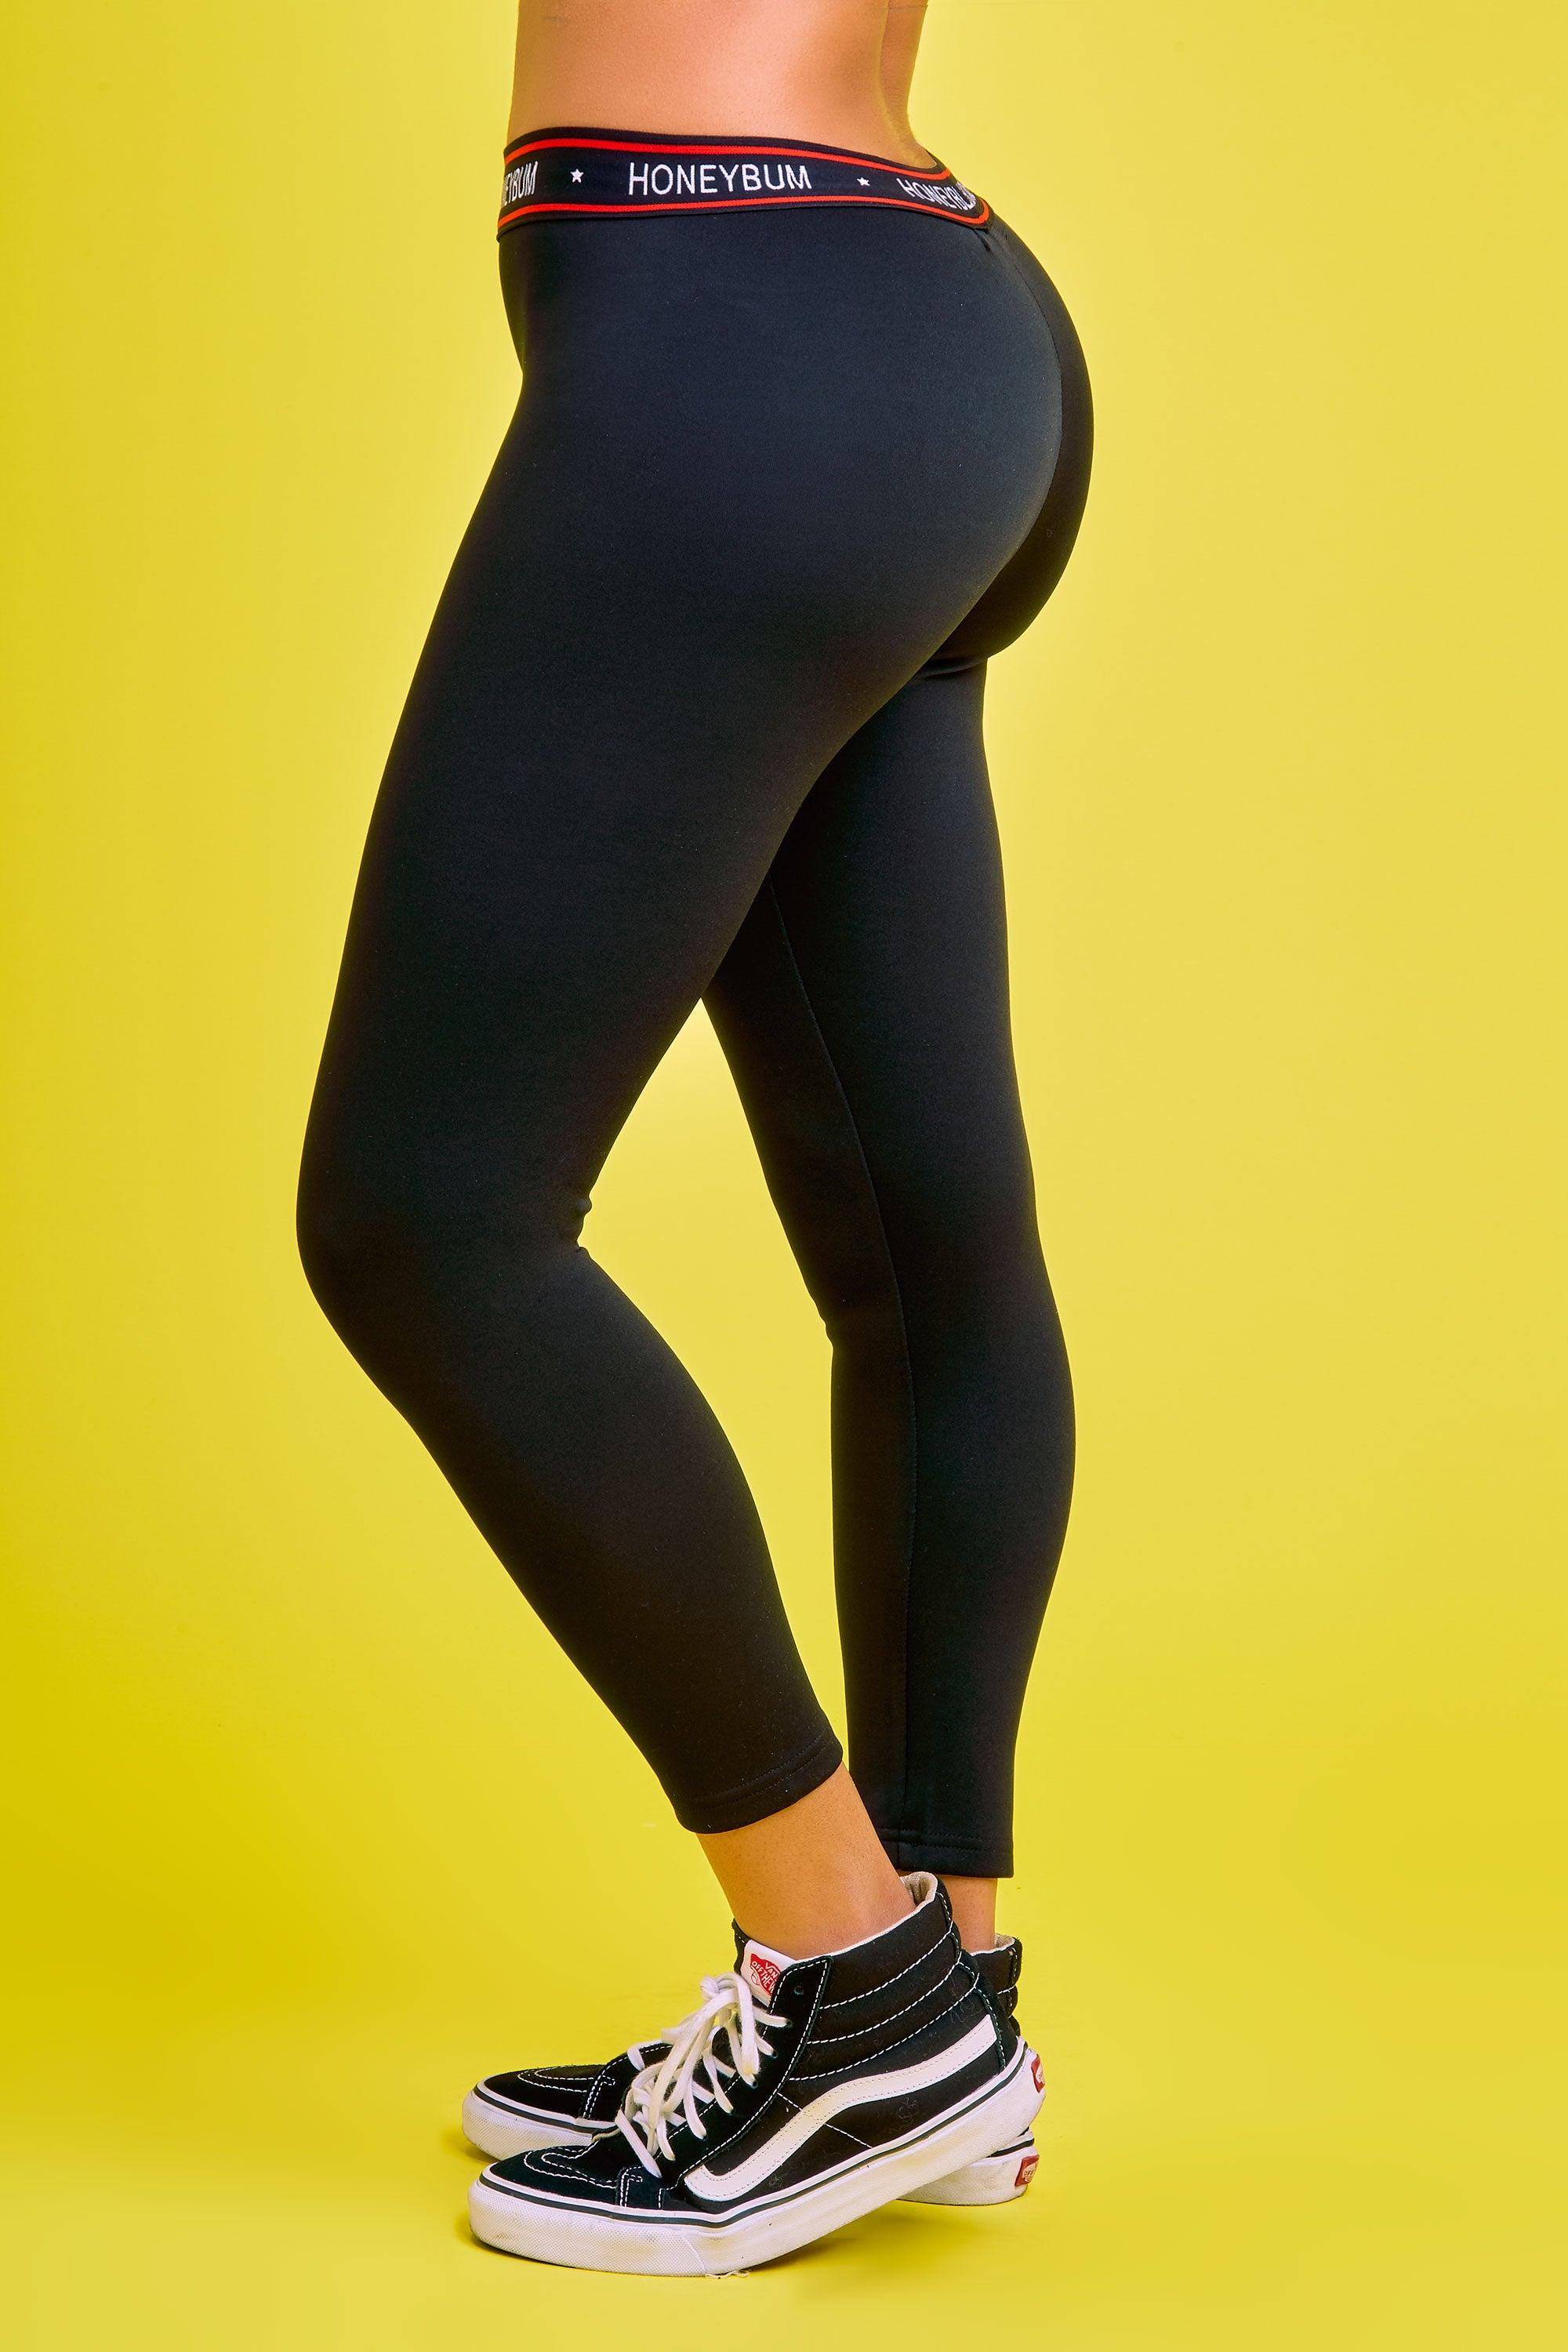 Honeybum Legging